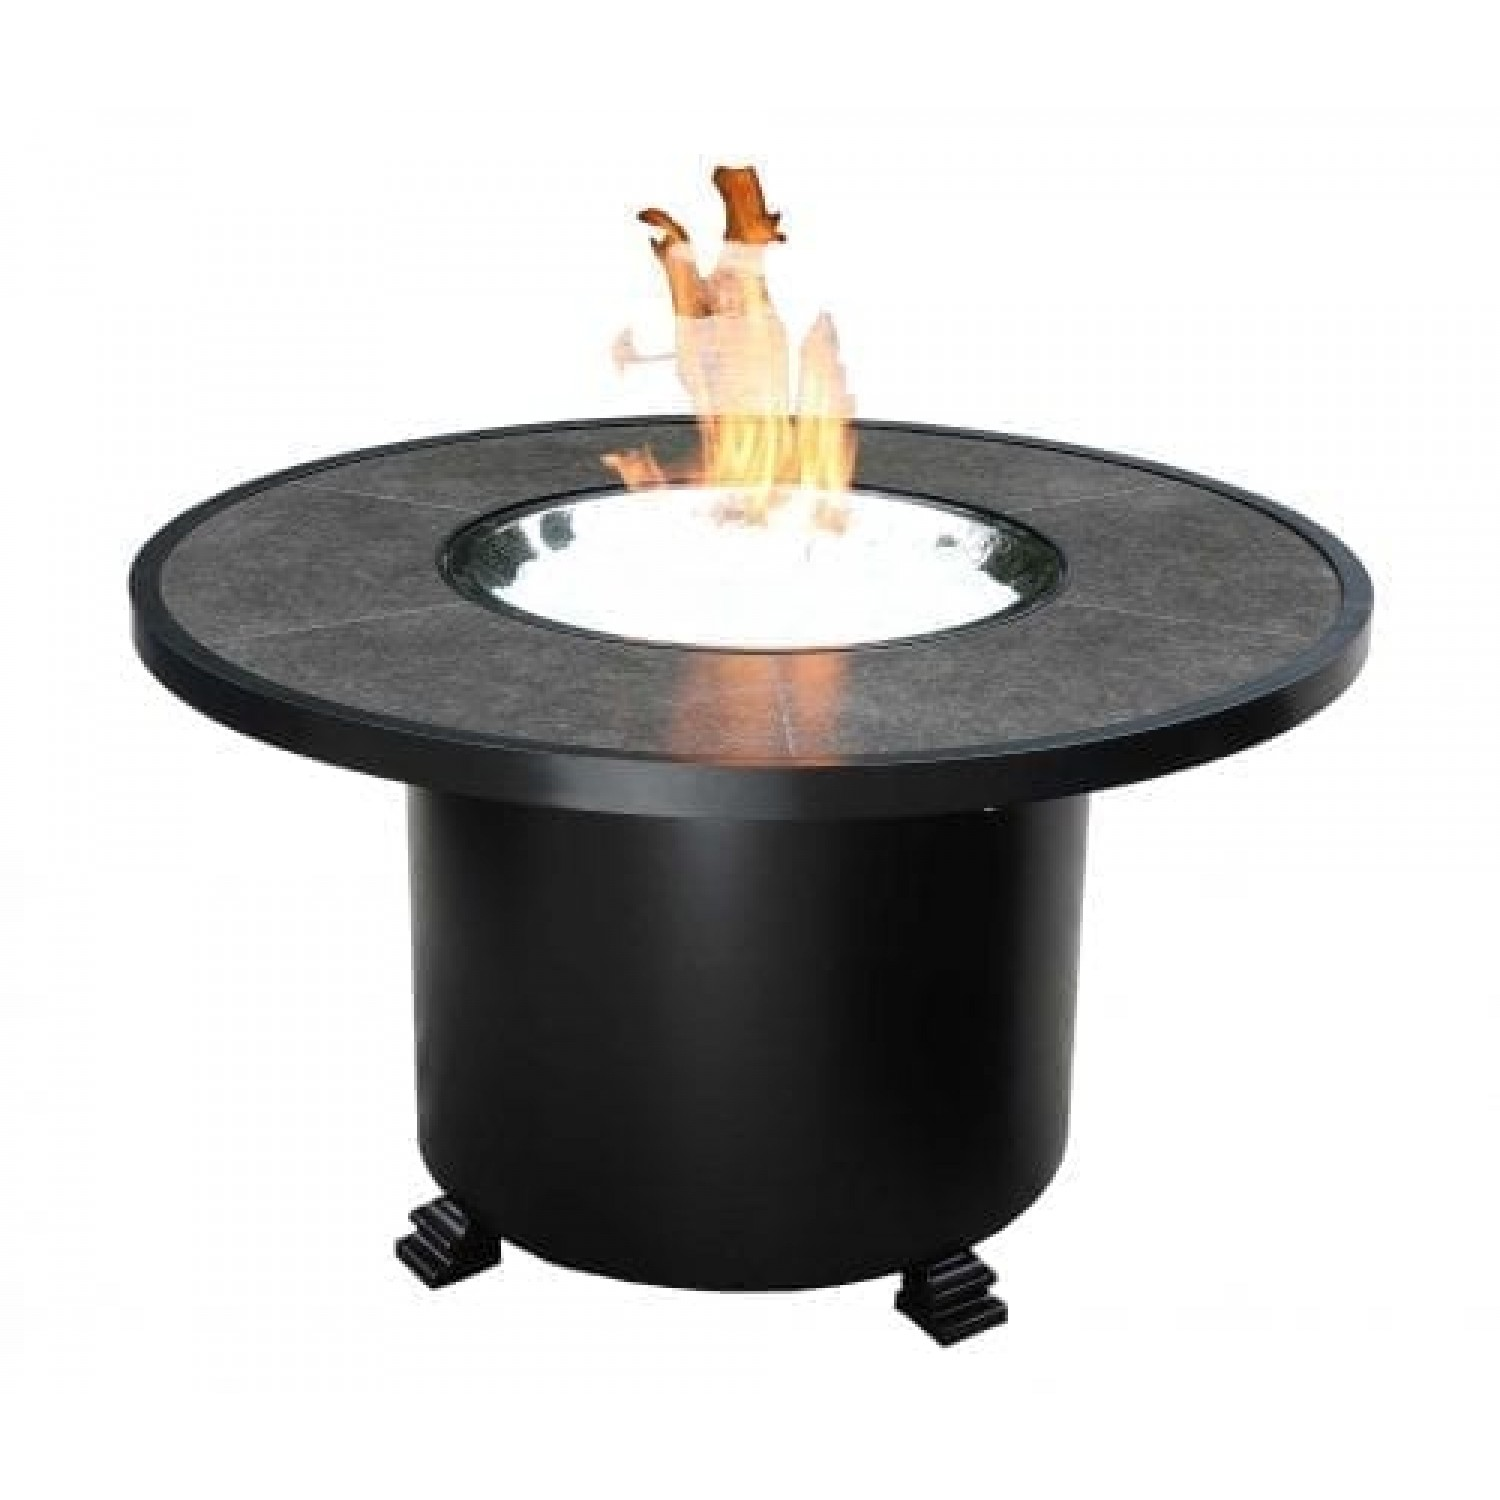 Gramercy Fire table